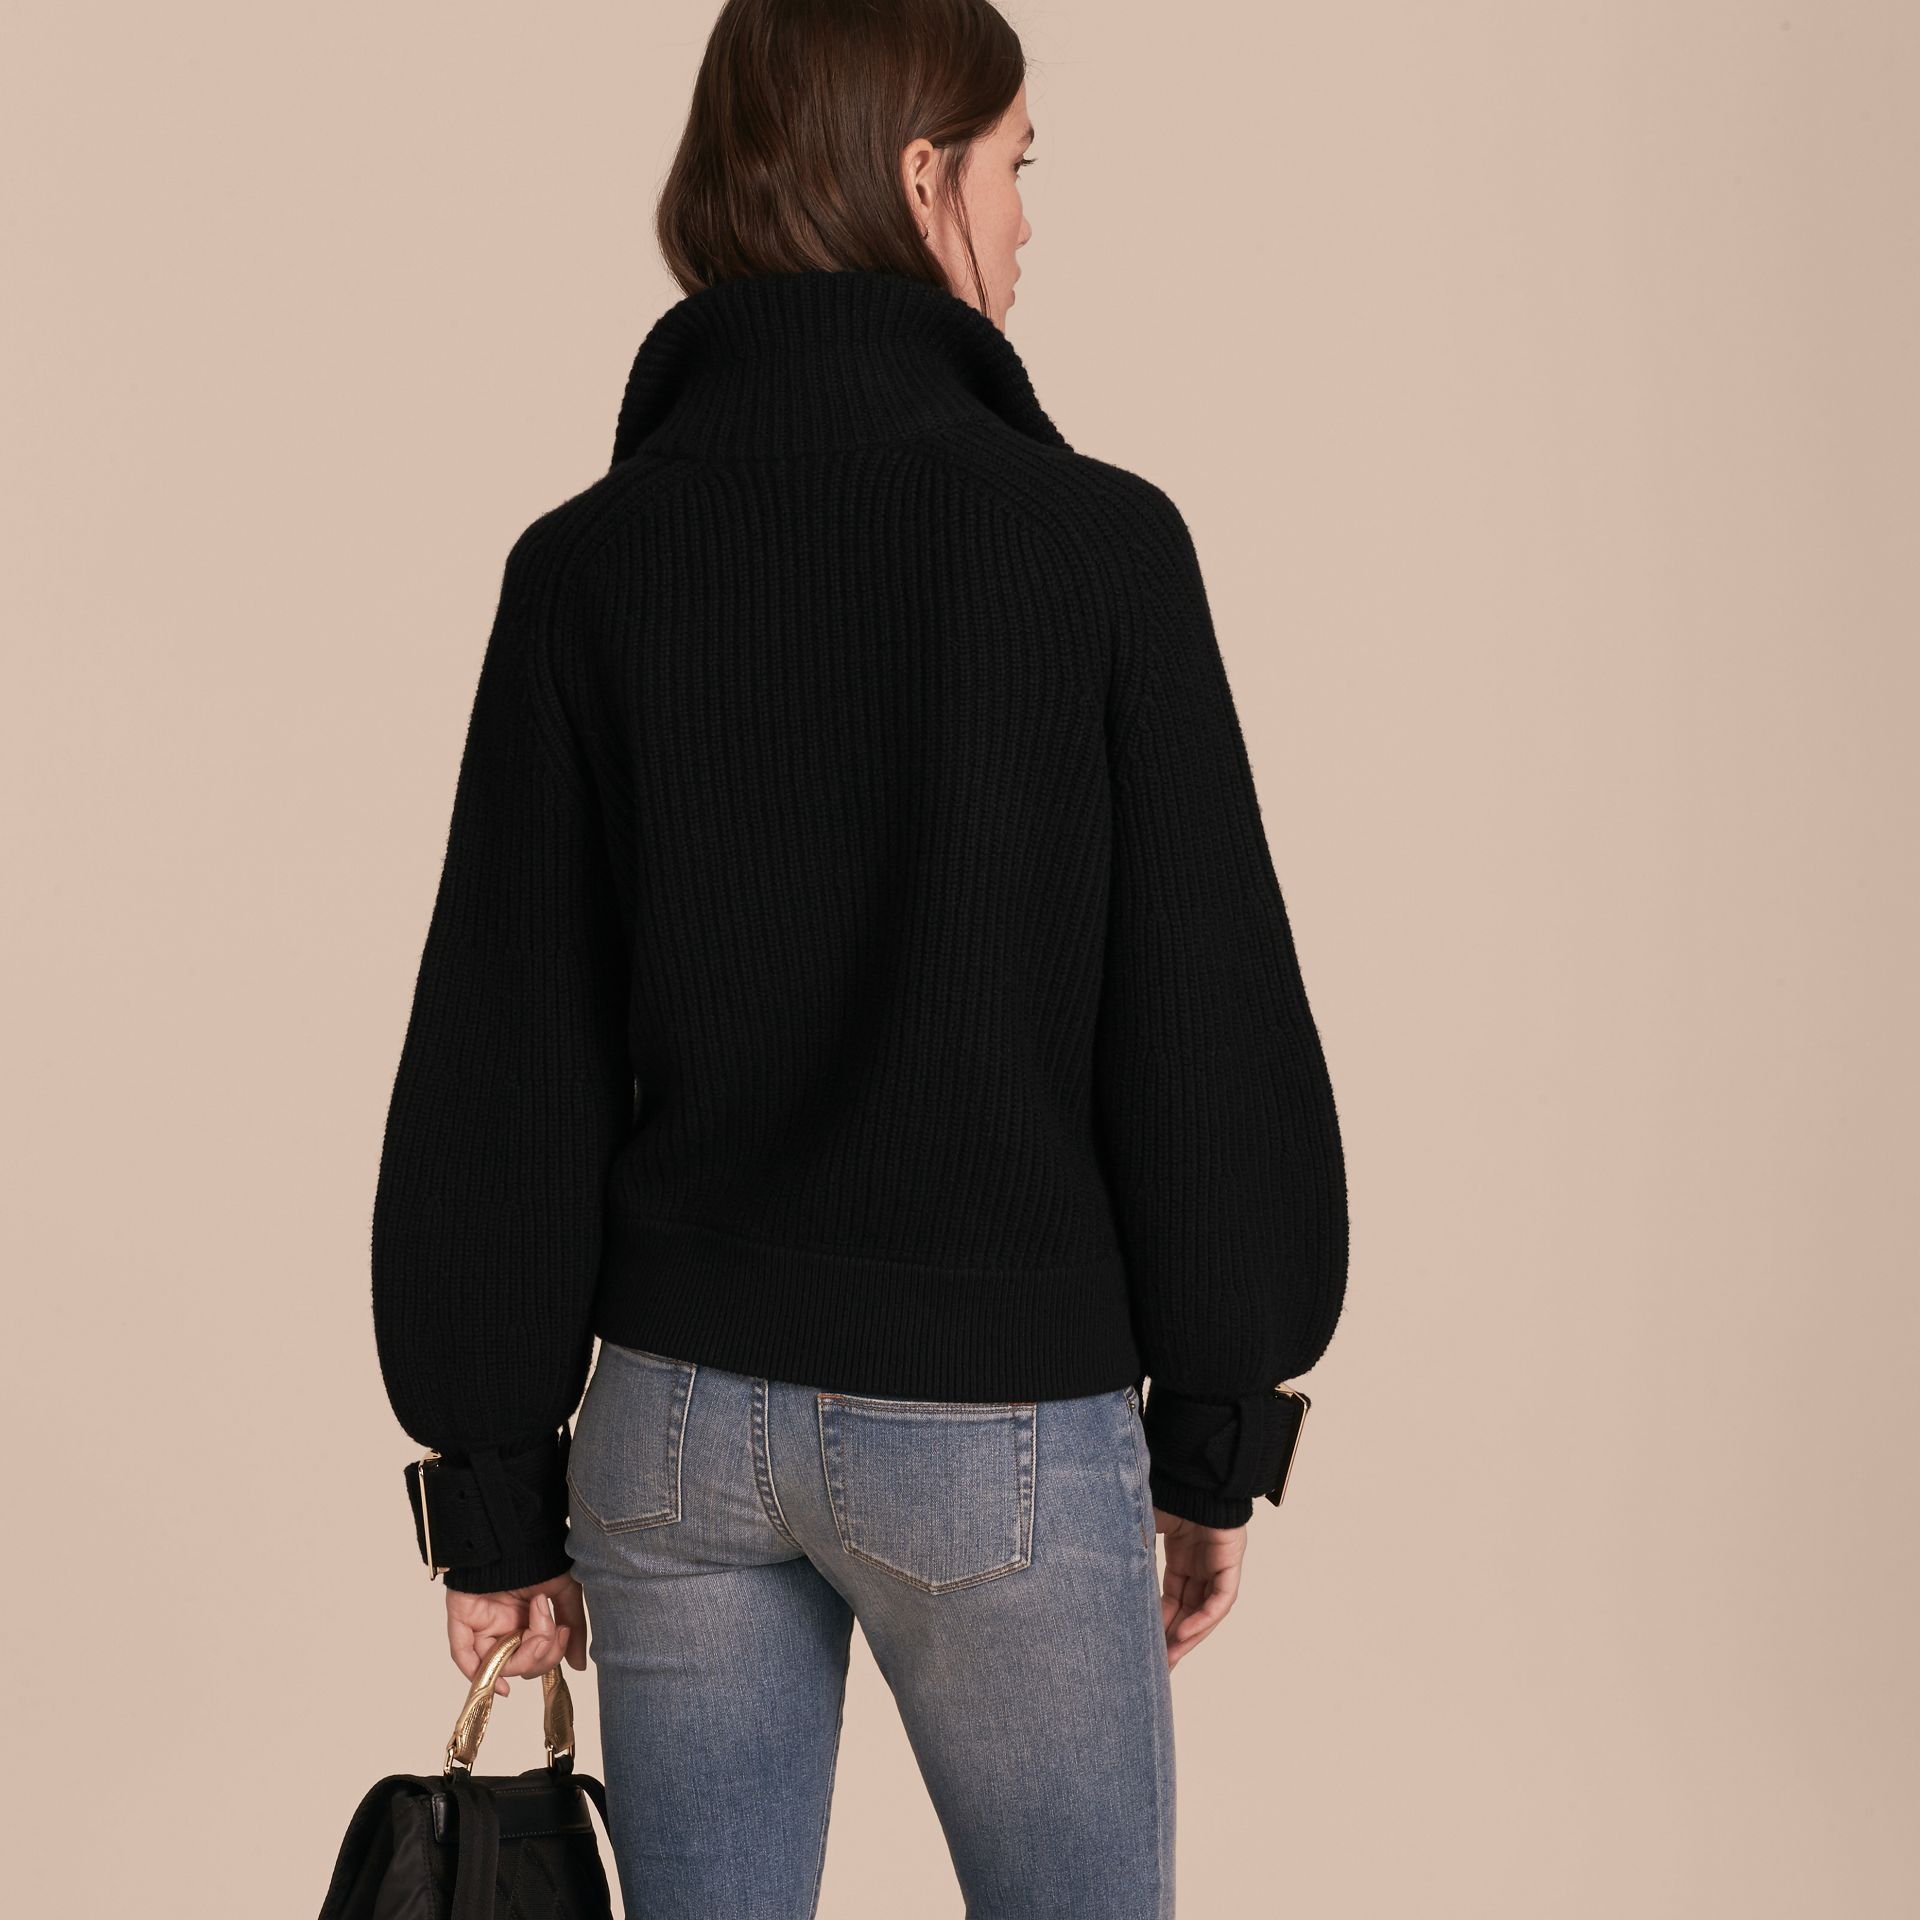 Black Knitted Wool Cashmere Bomber Jacket with Bell Sleeves - gallery image 5